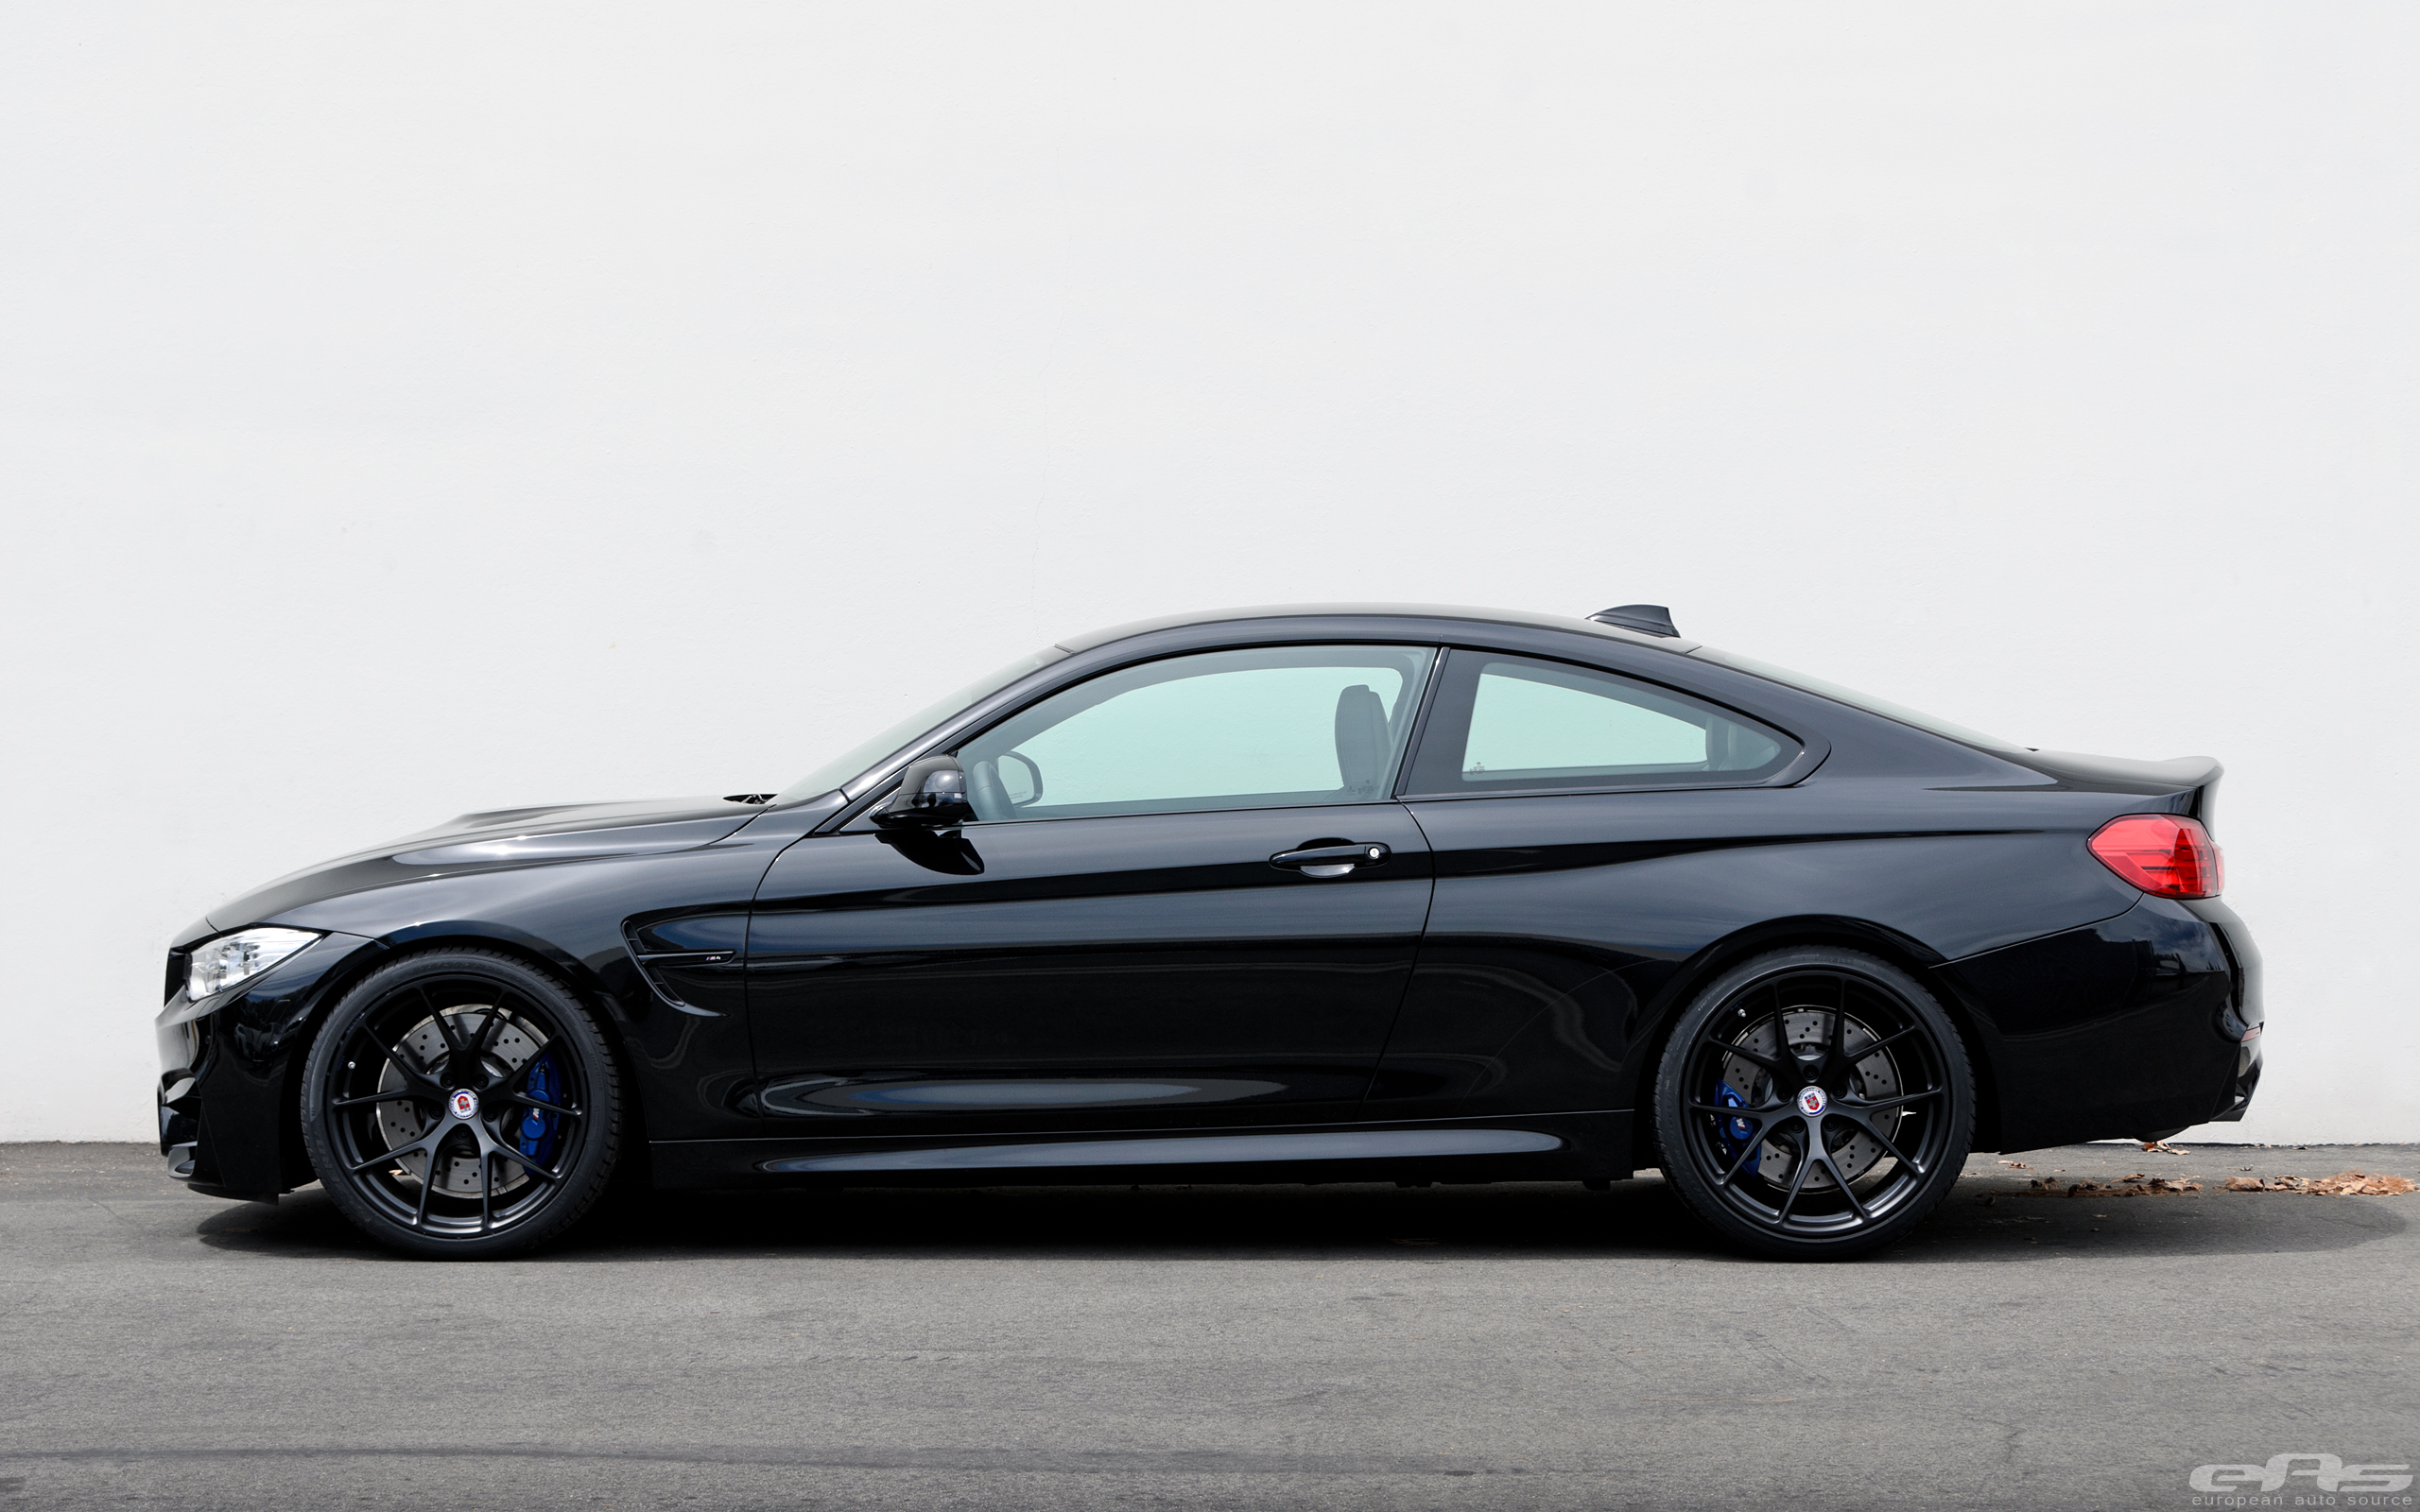 Matte Black Hre Wheels For A Black Sapphire M4